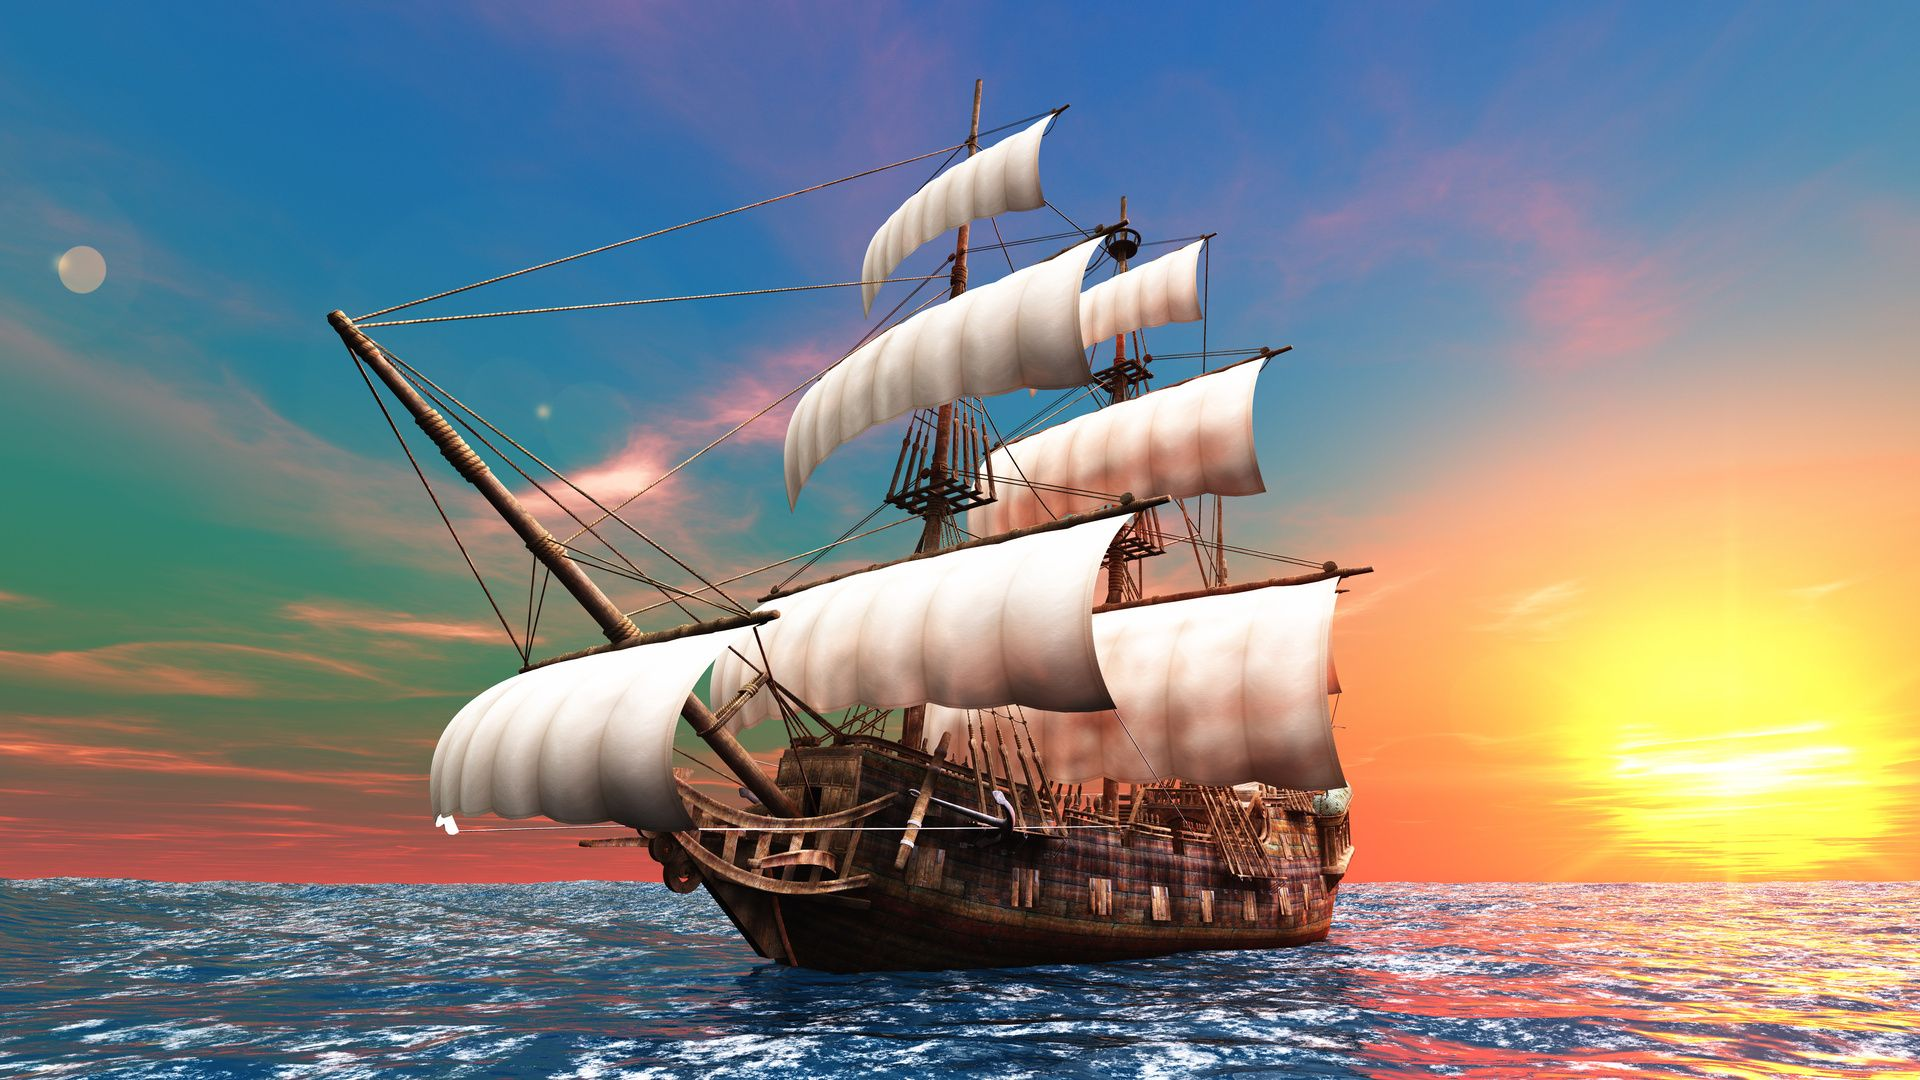 Ship Picture